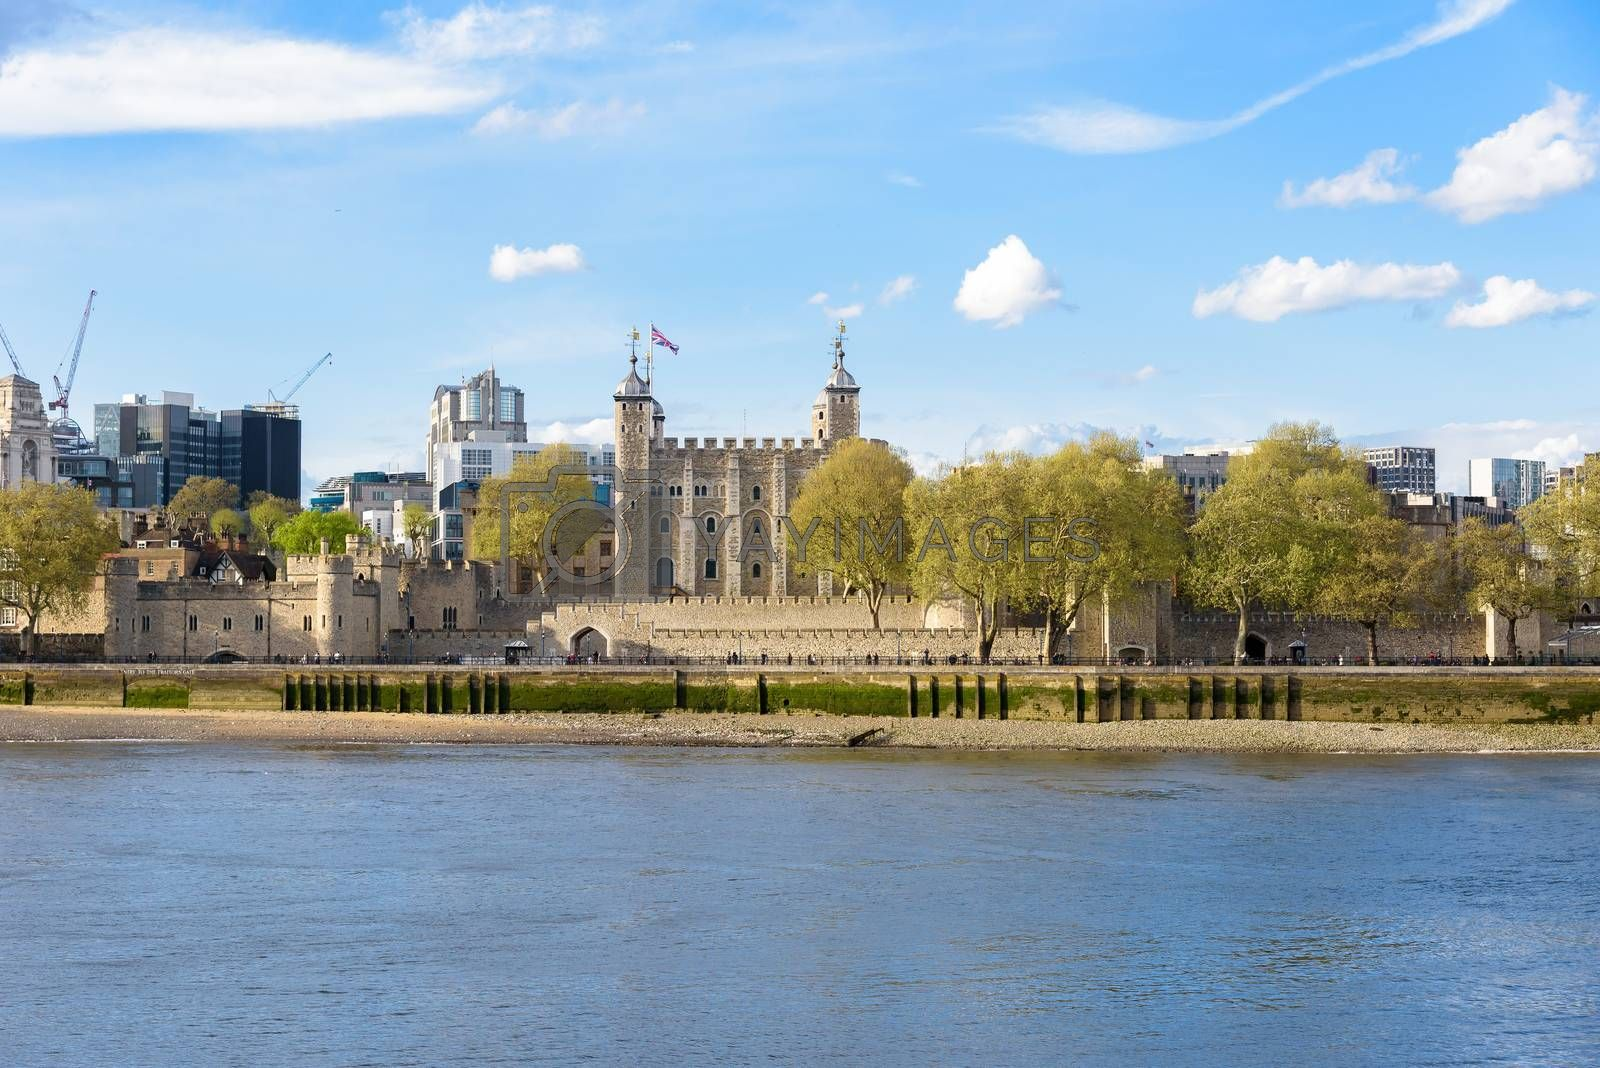 Historical building Tower of London, famous landmark of United Kingdom on a cloudy day